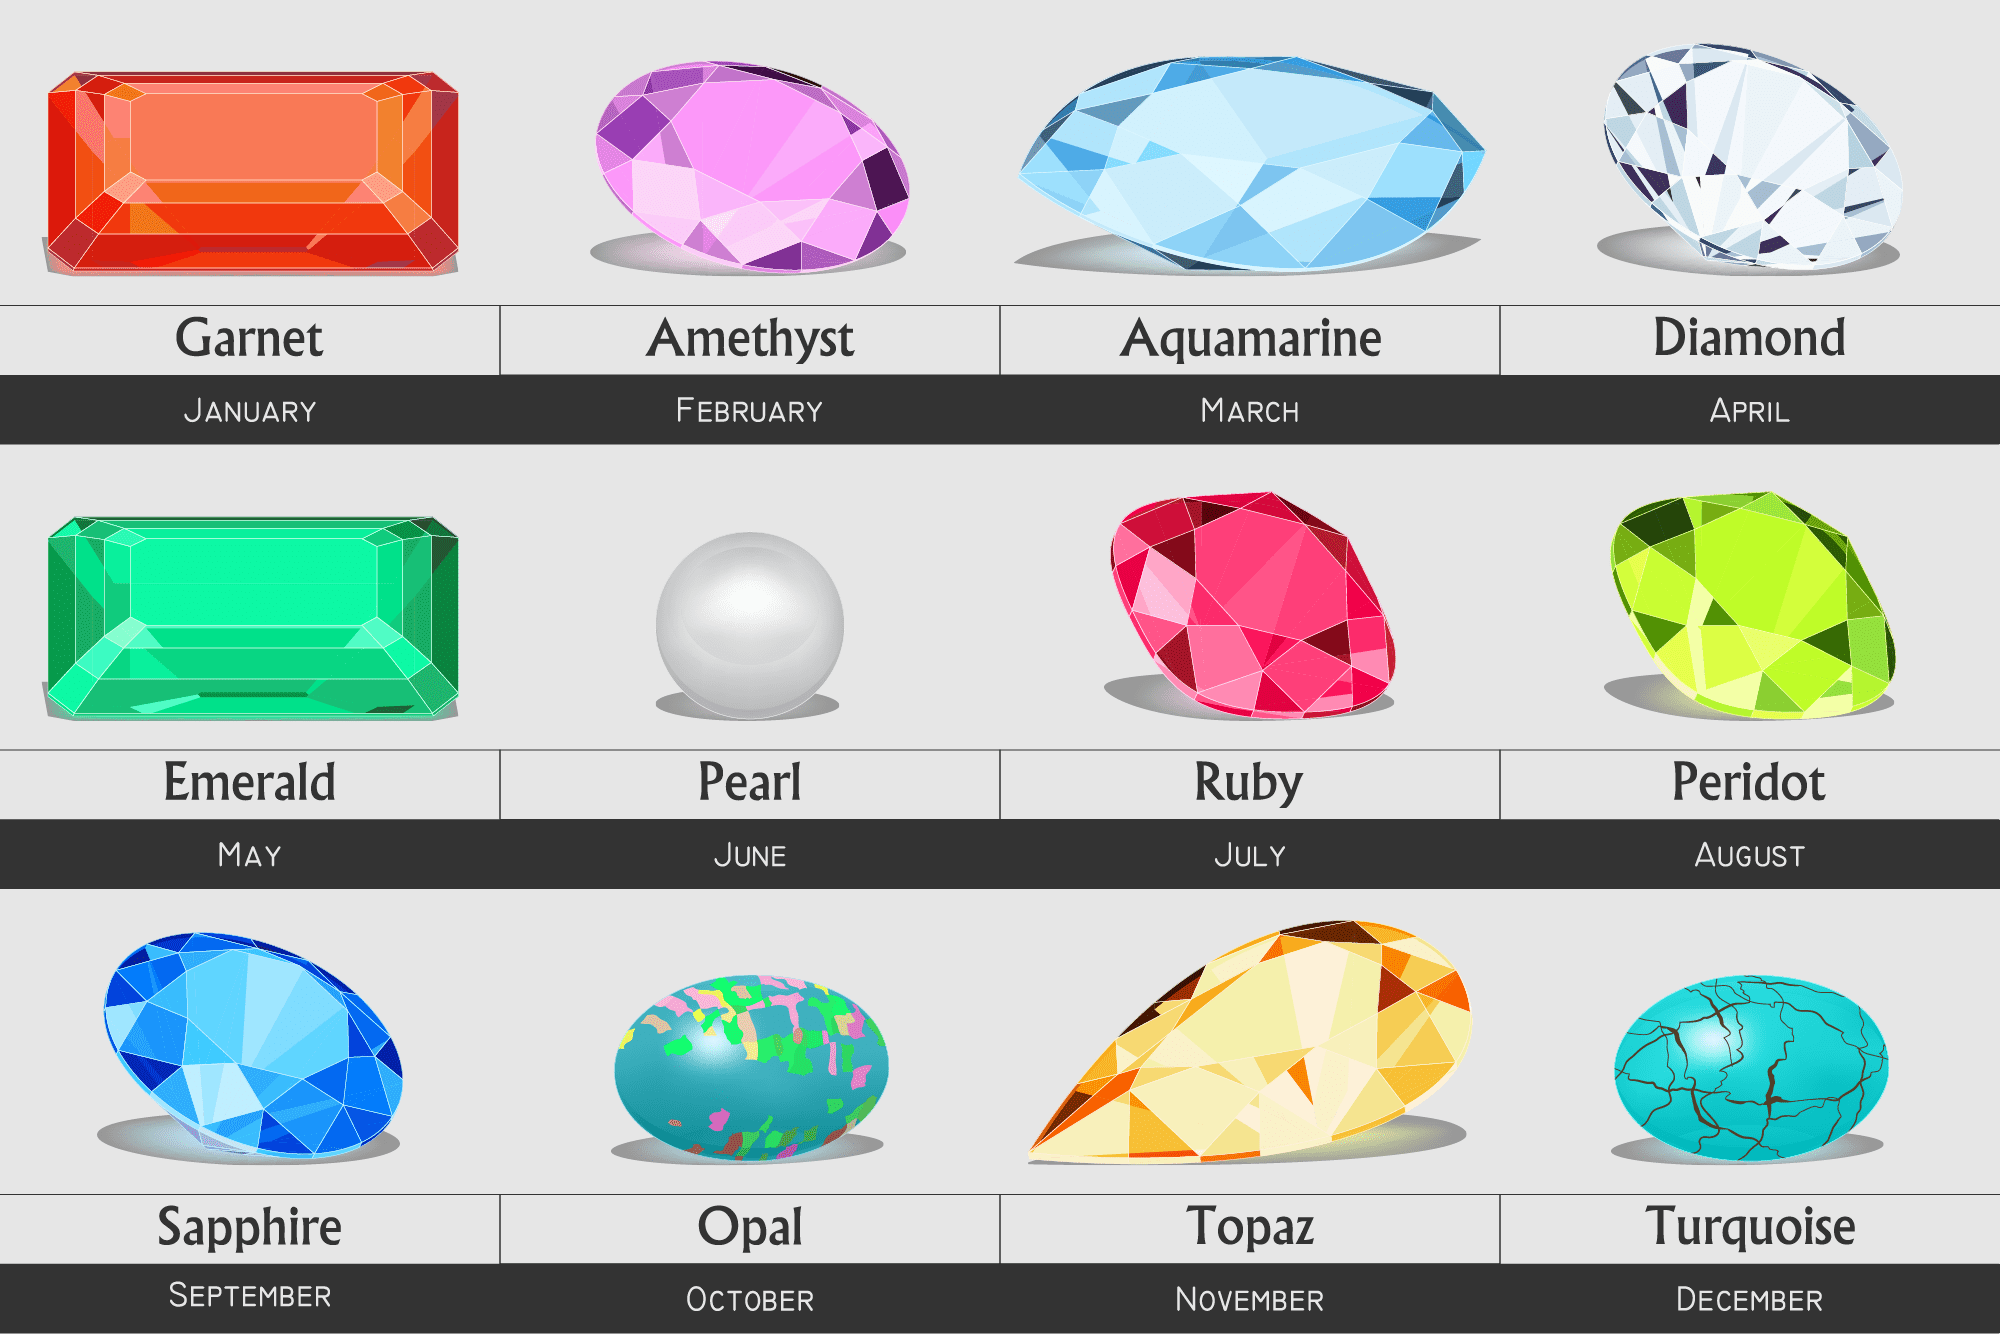 Birthstone Colors By Month And Their Meanings